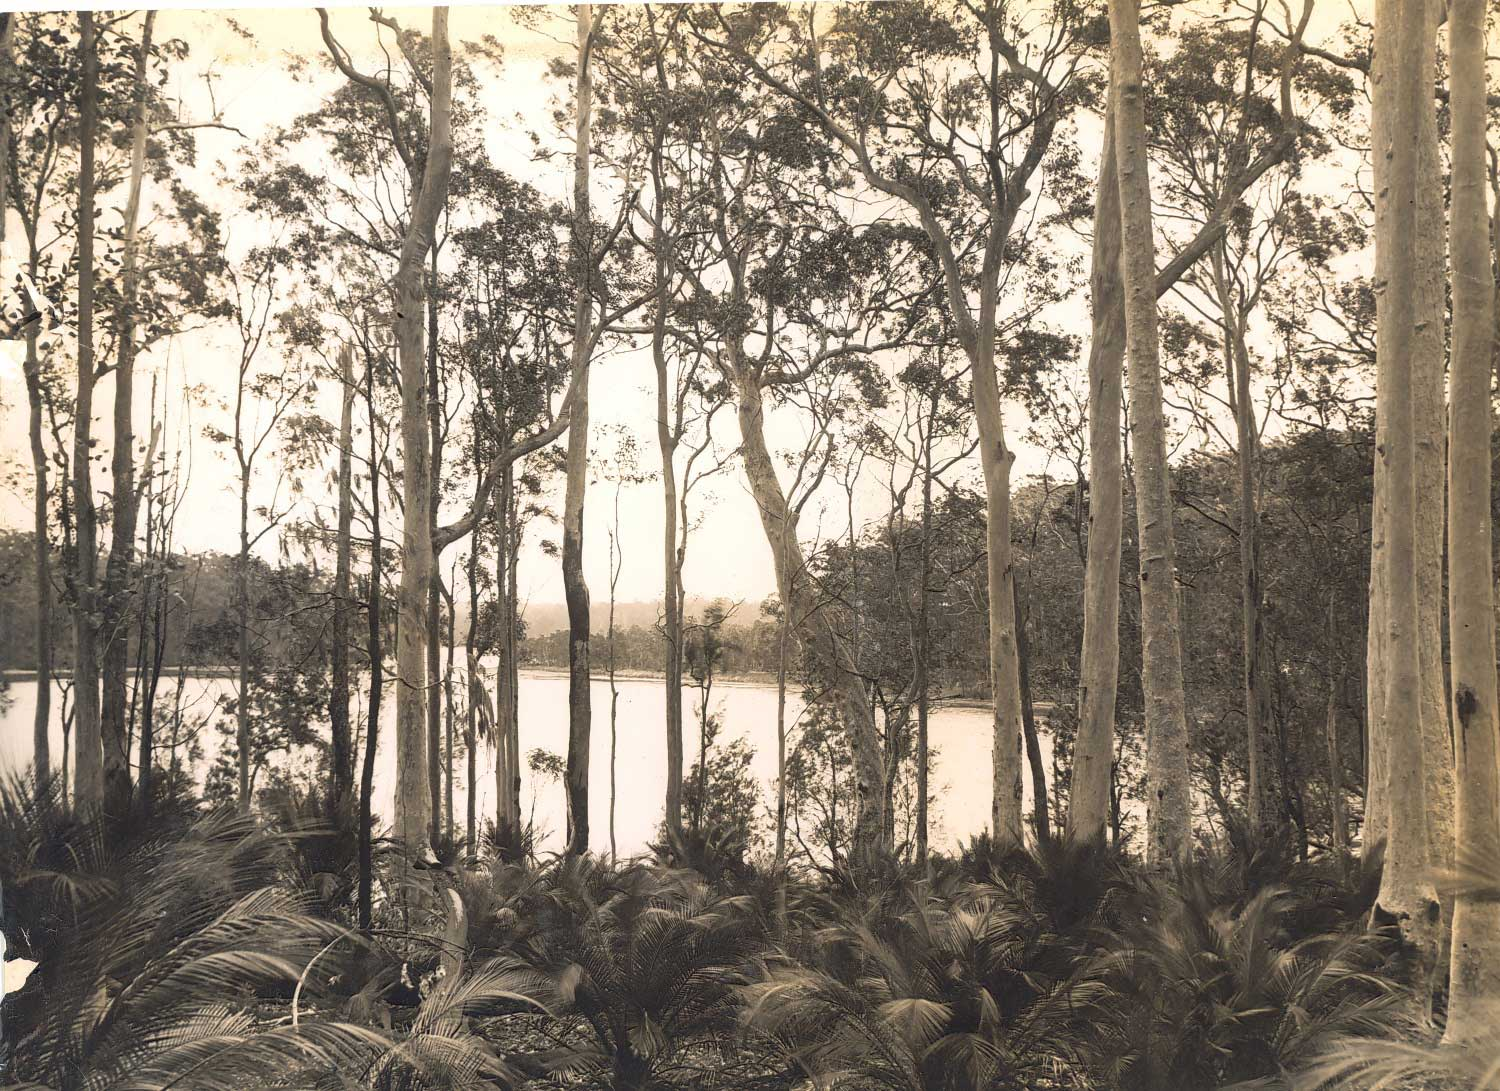 A view through trees to Durrass Lake, New South Wales